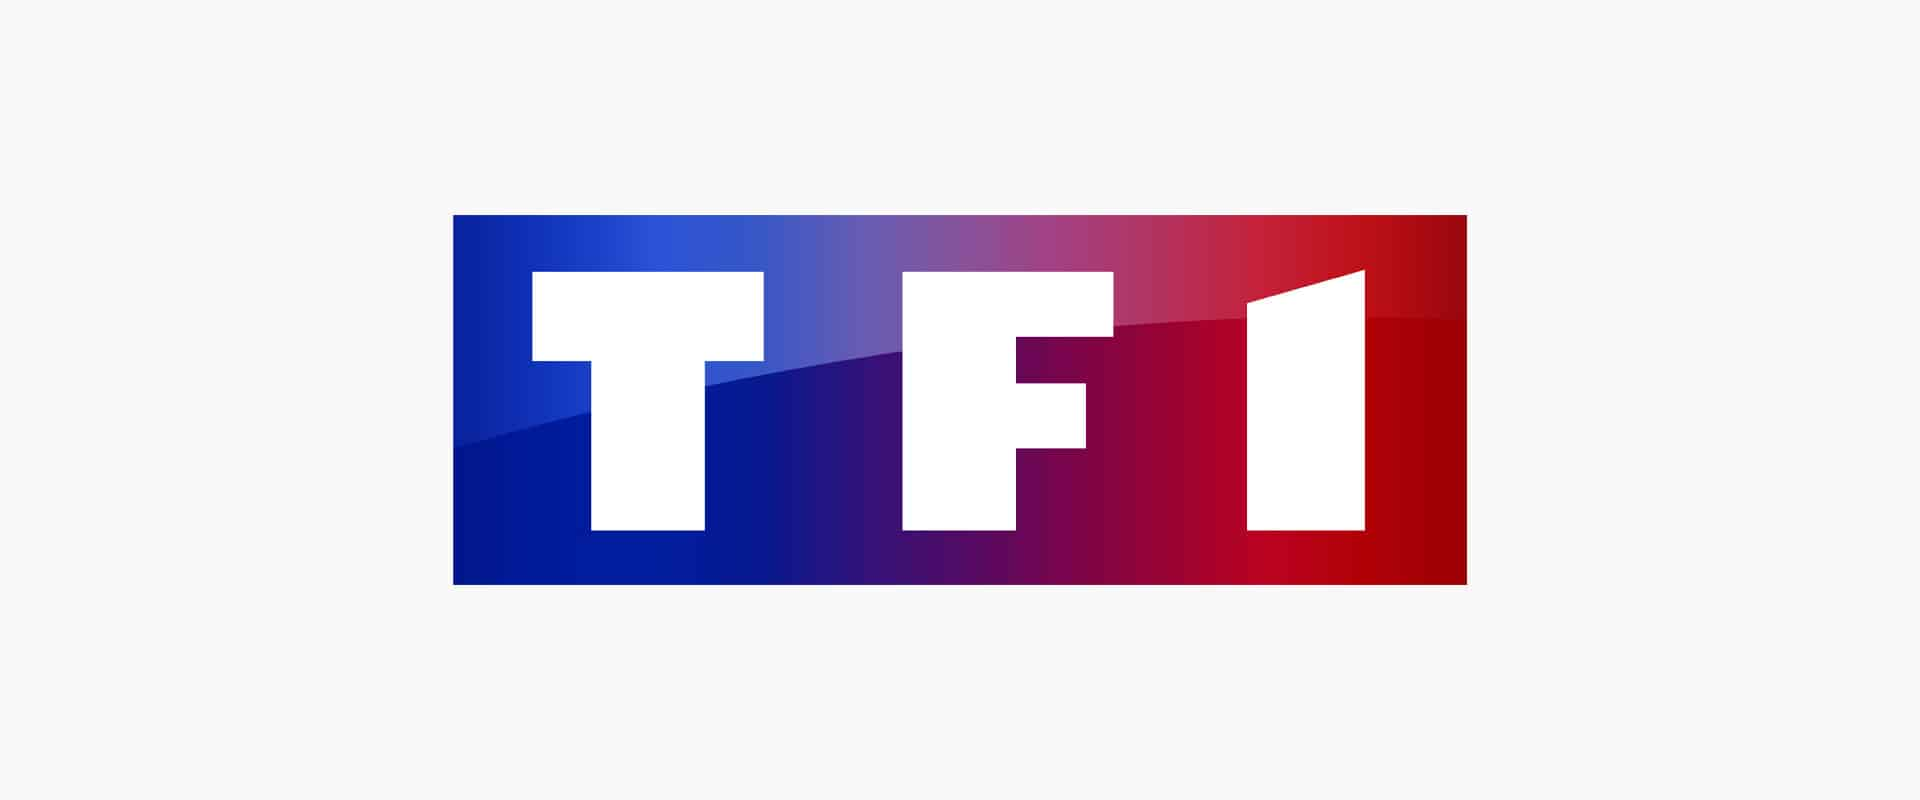 Proprietes-privees.com en prime time sur TF1